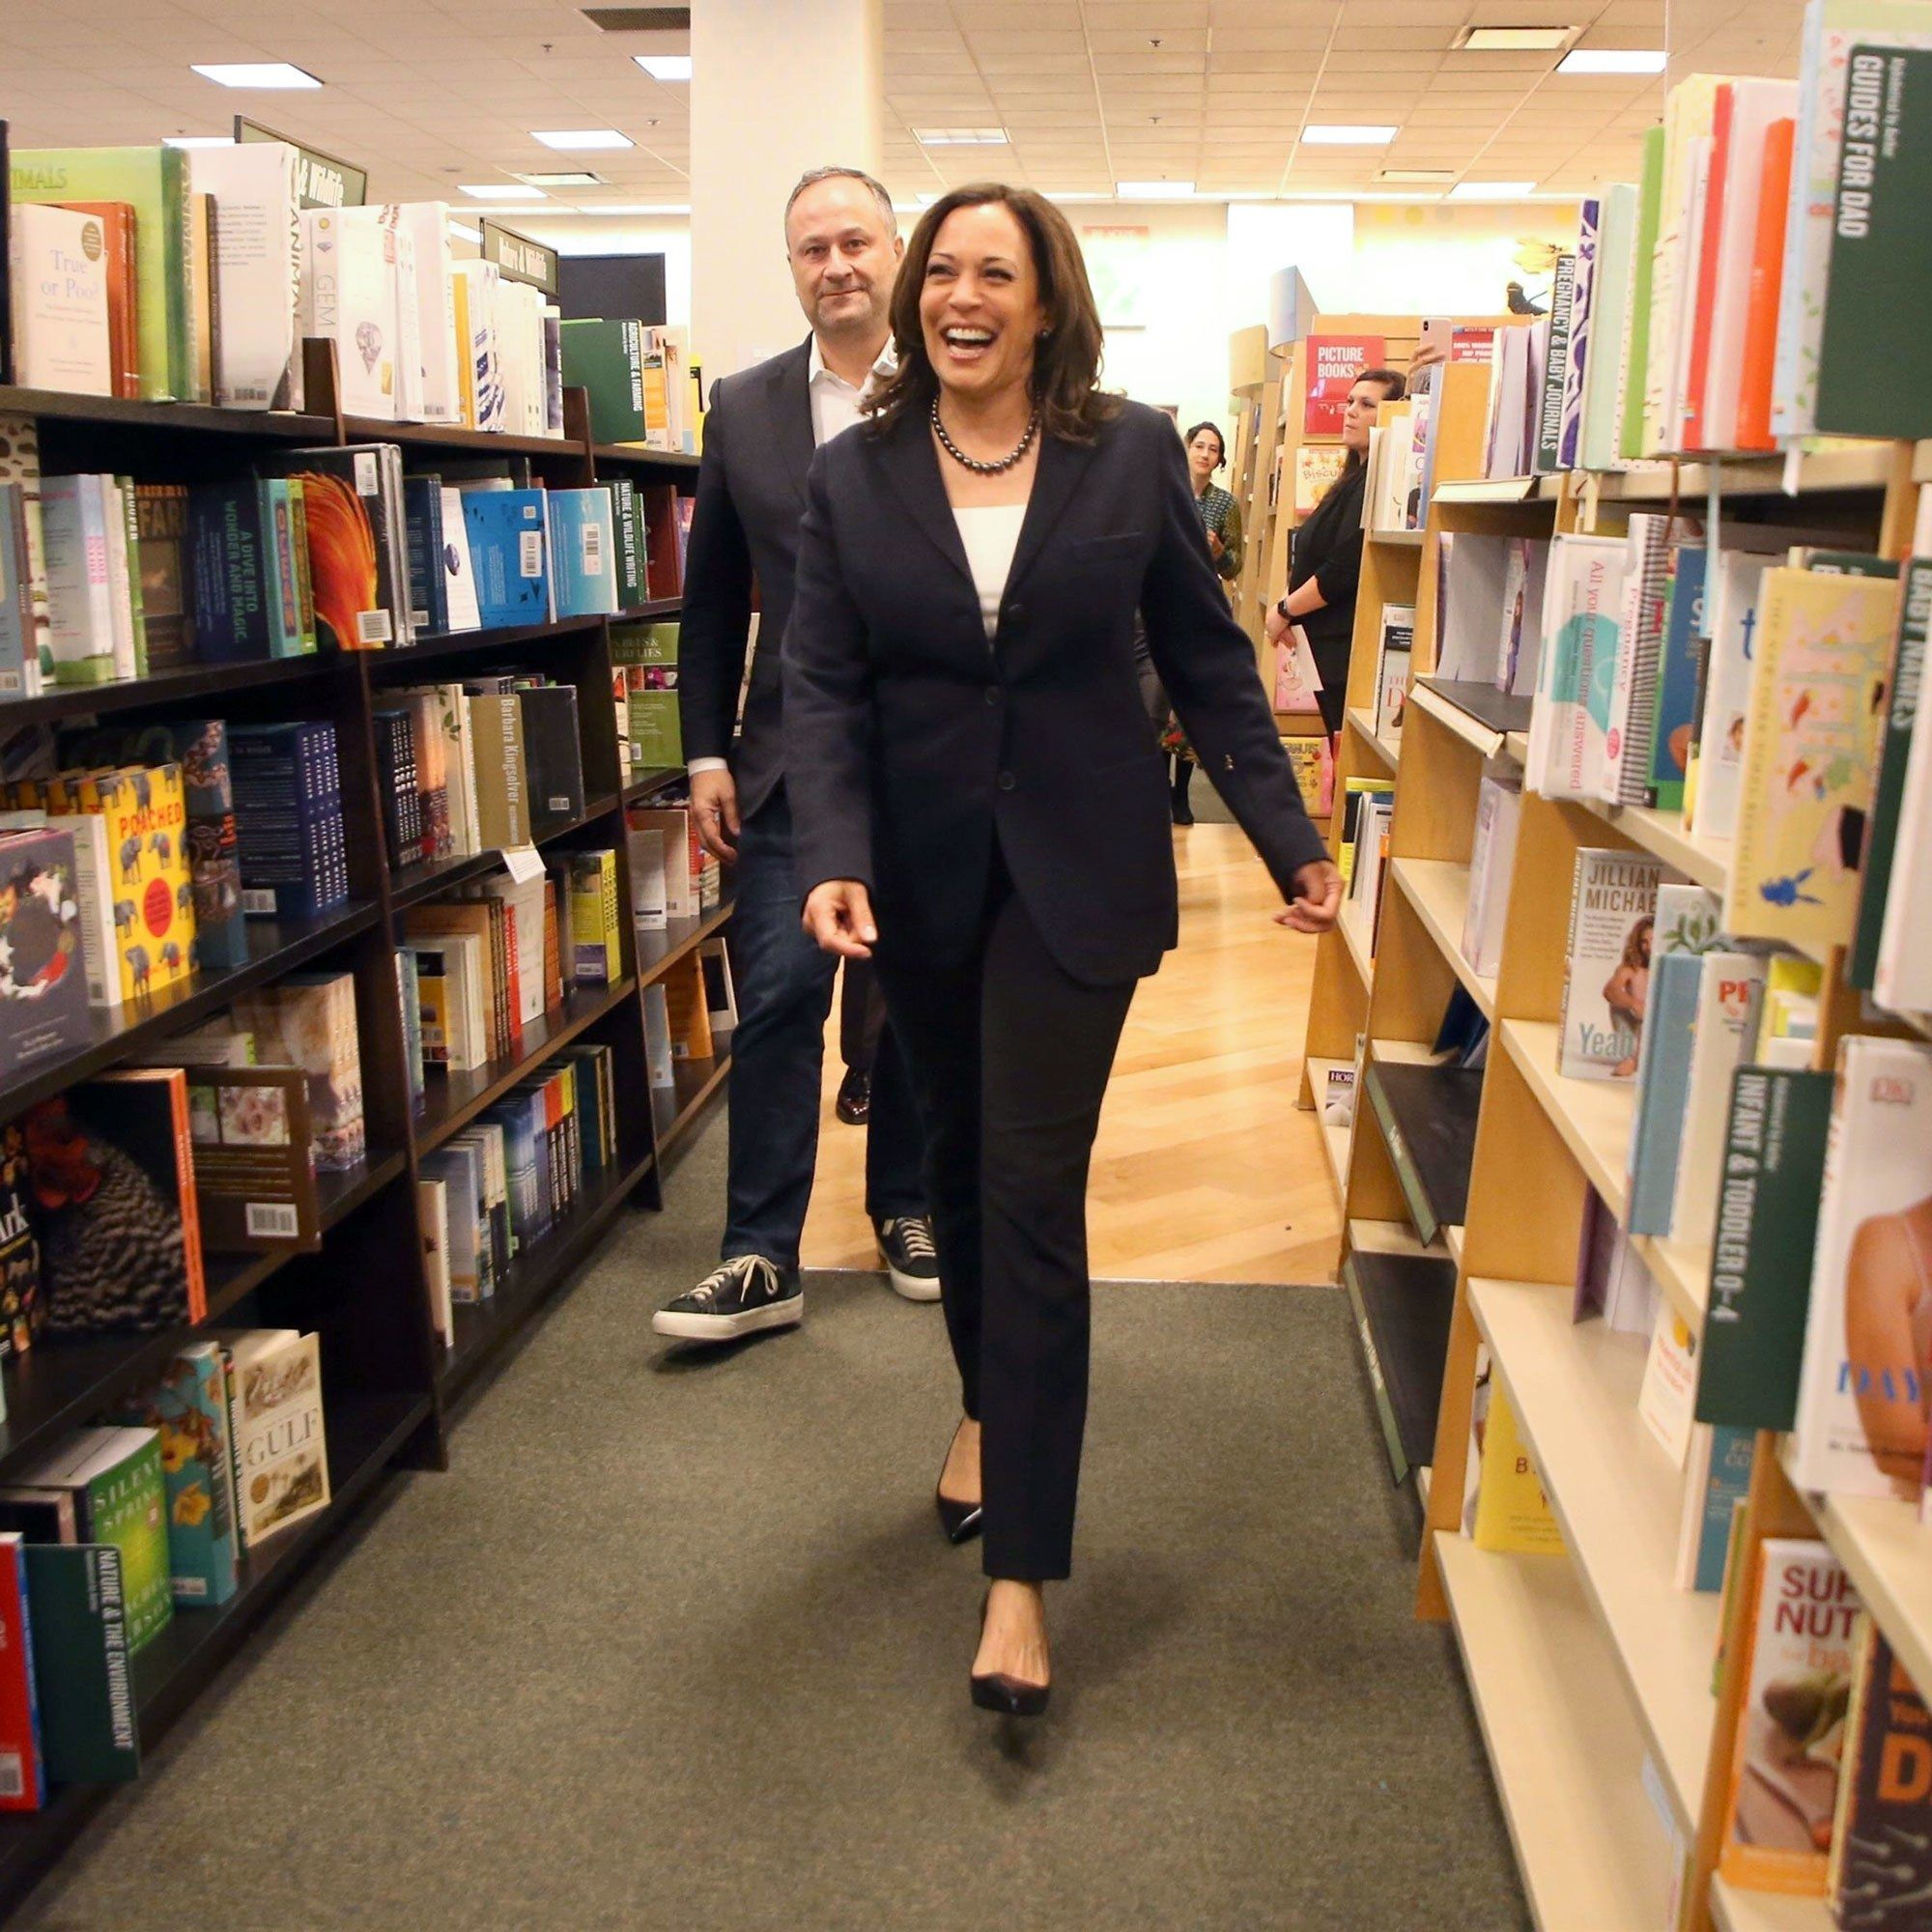 Women Candidates Also Have Dogs, Read Books and Listen to